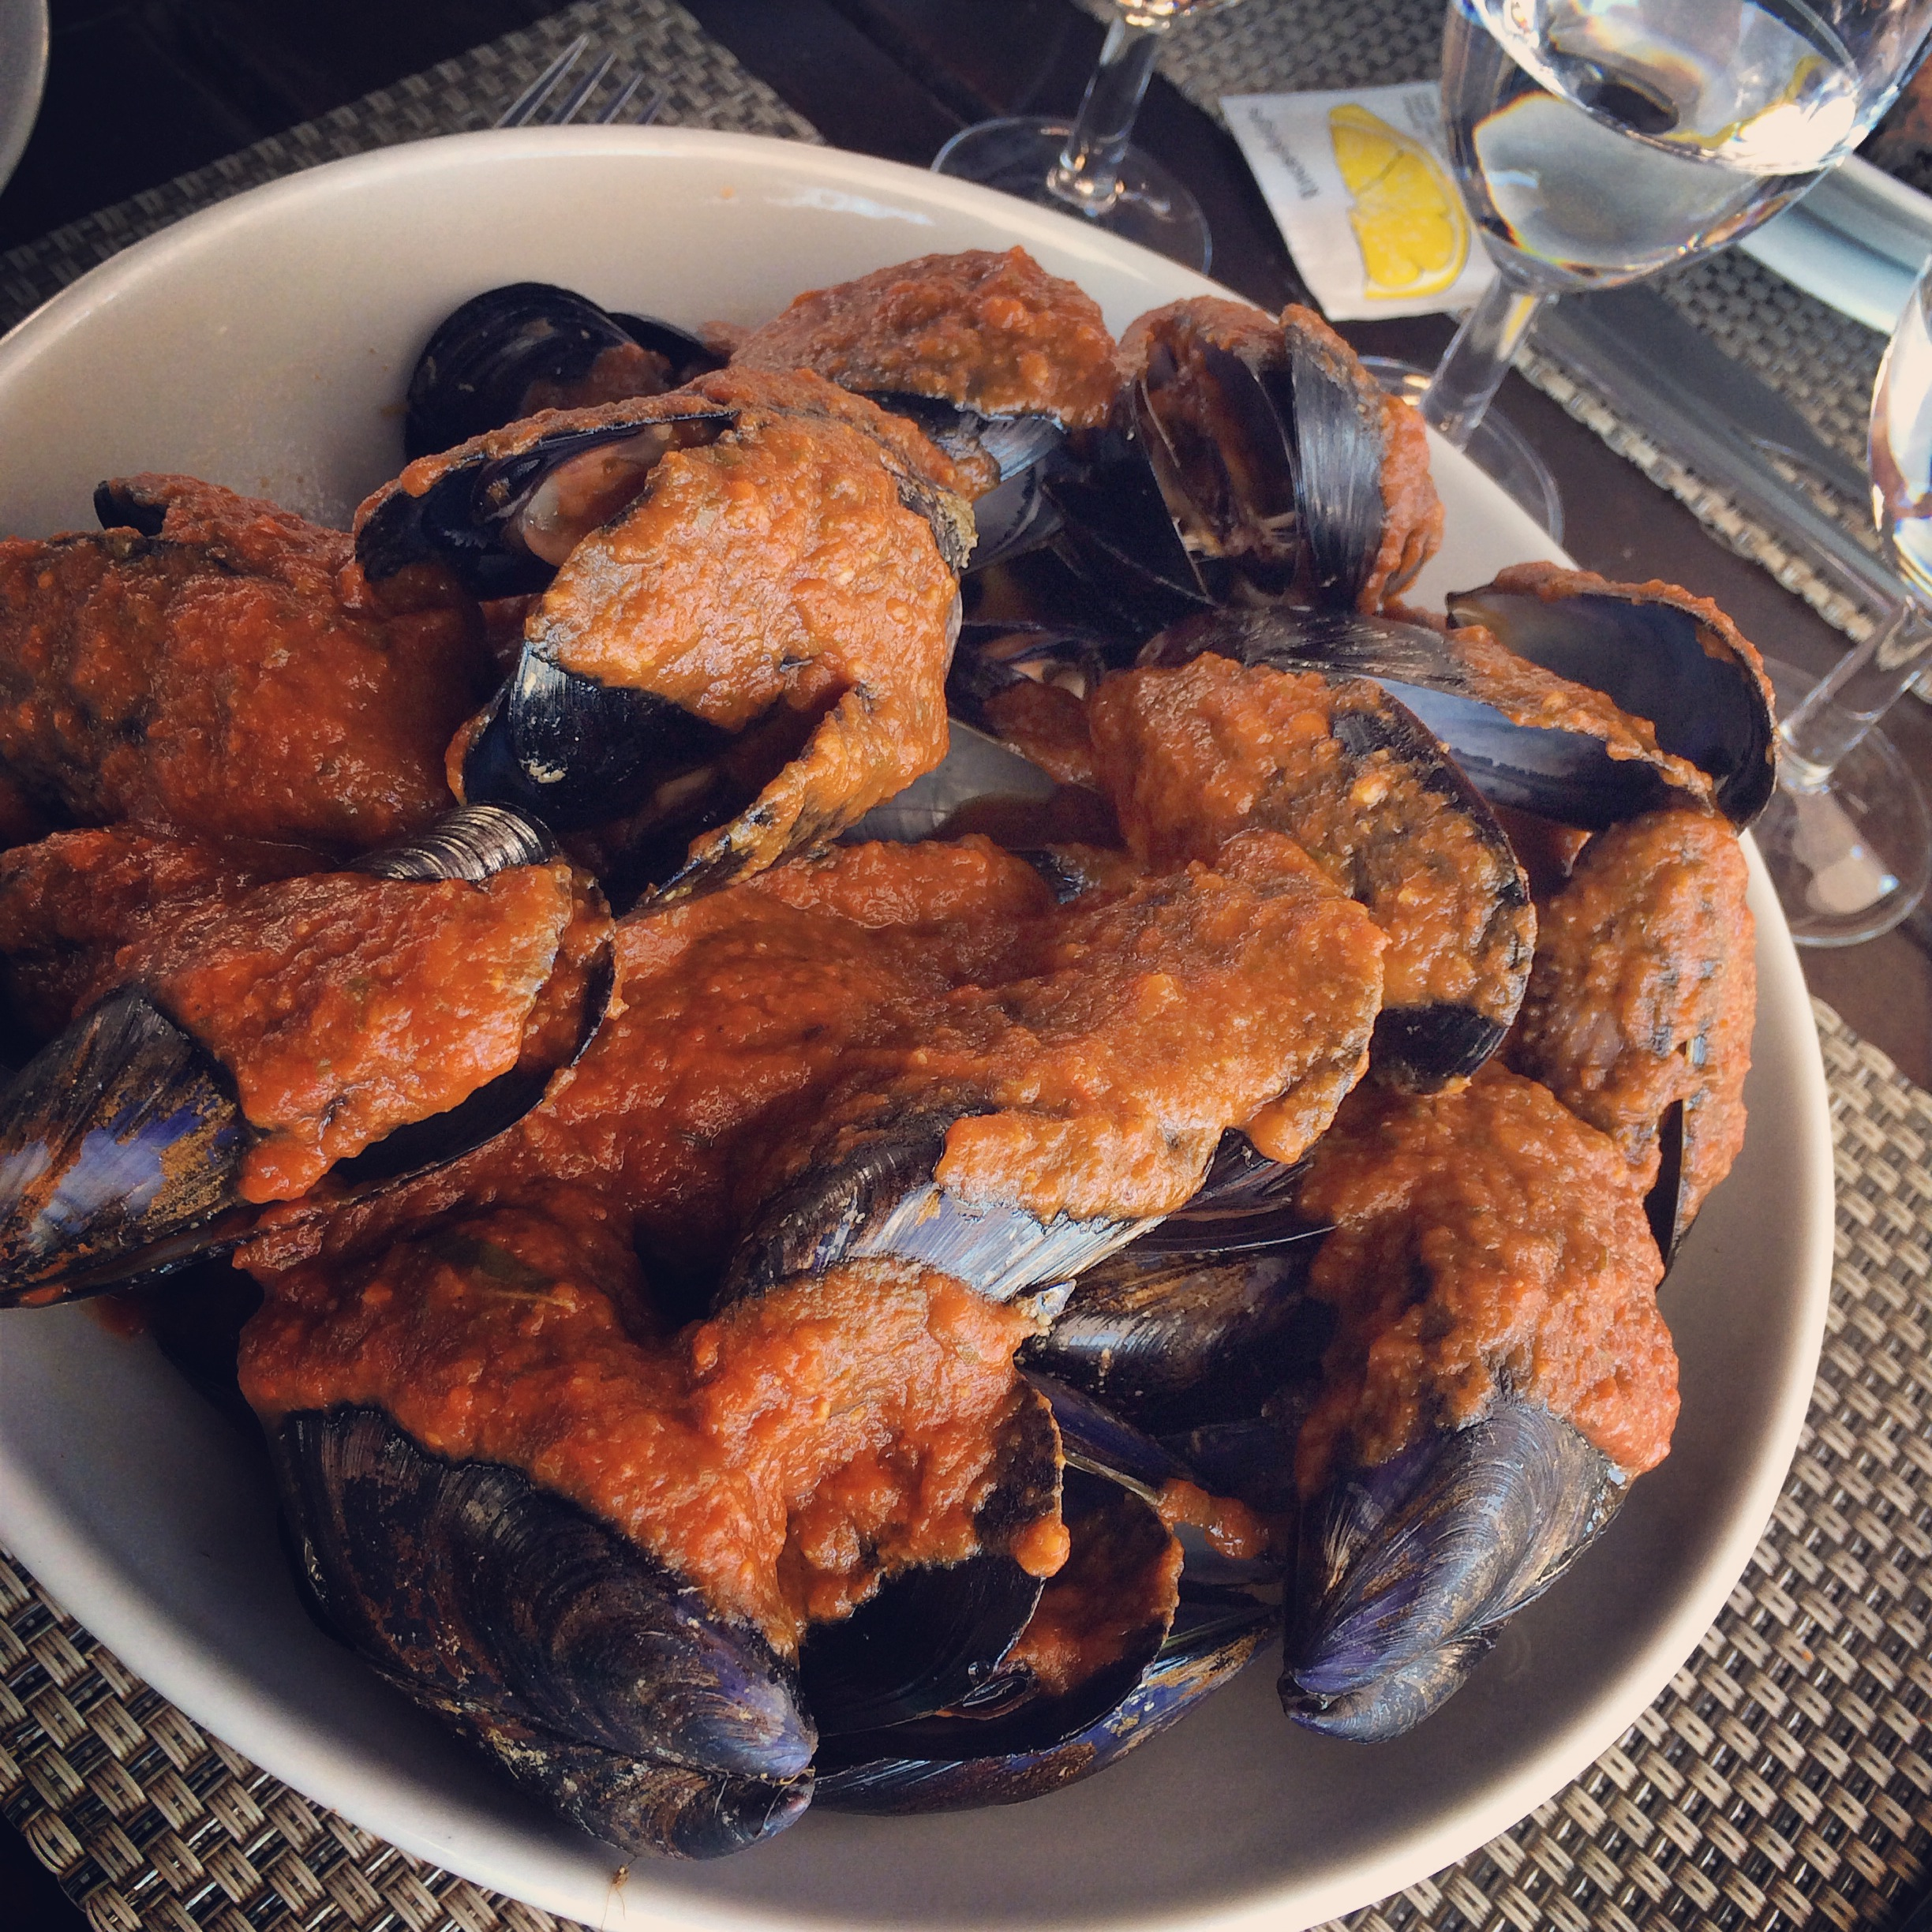 Mussels provence cassis